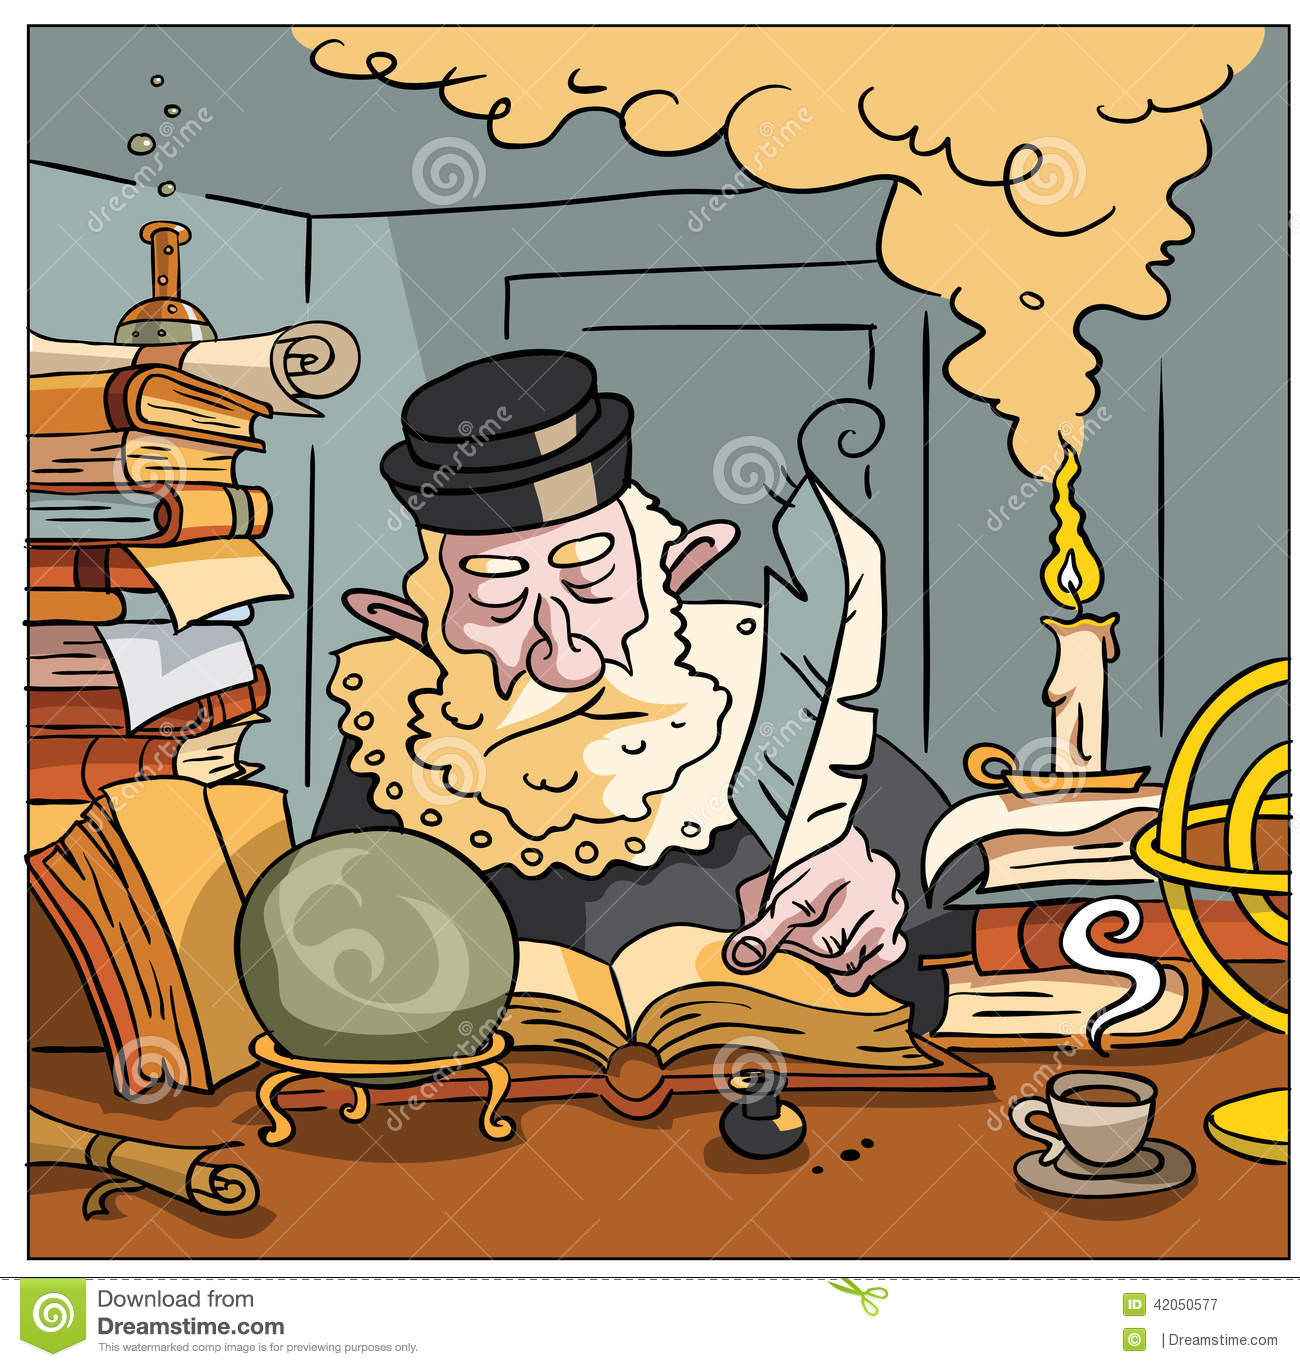 Nostradamus Cartoons and Comics - funny pictures from ...